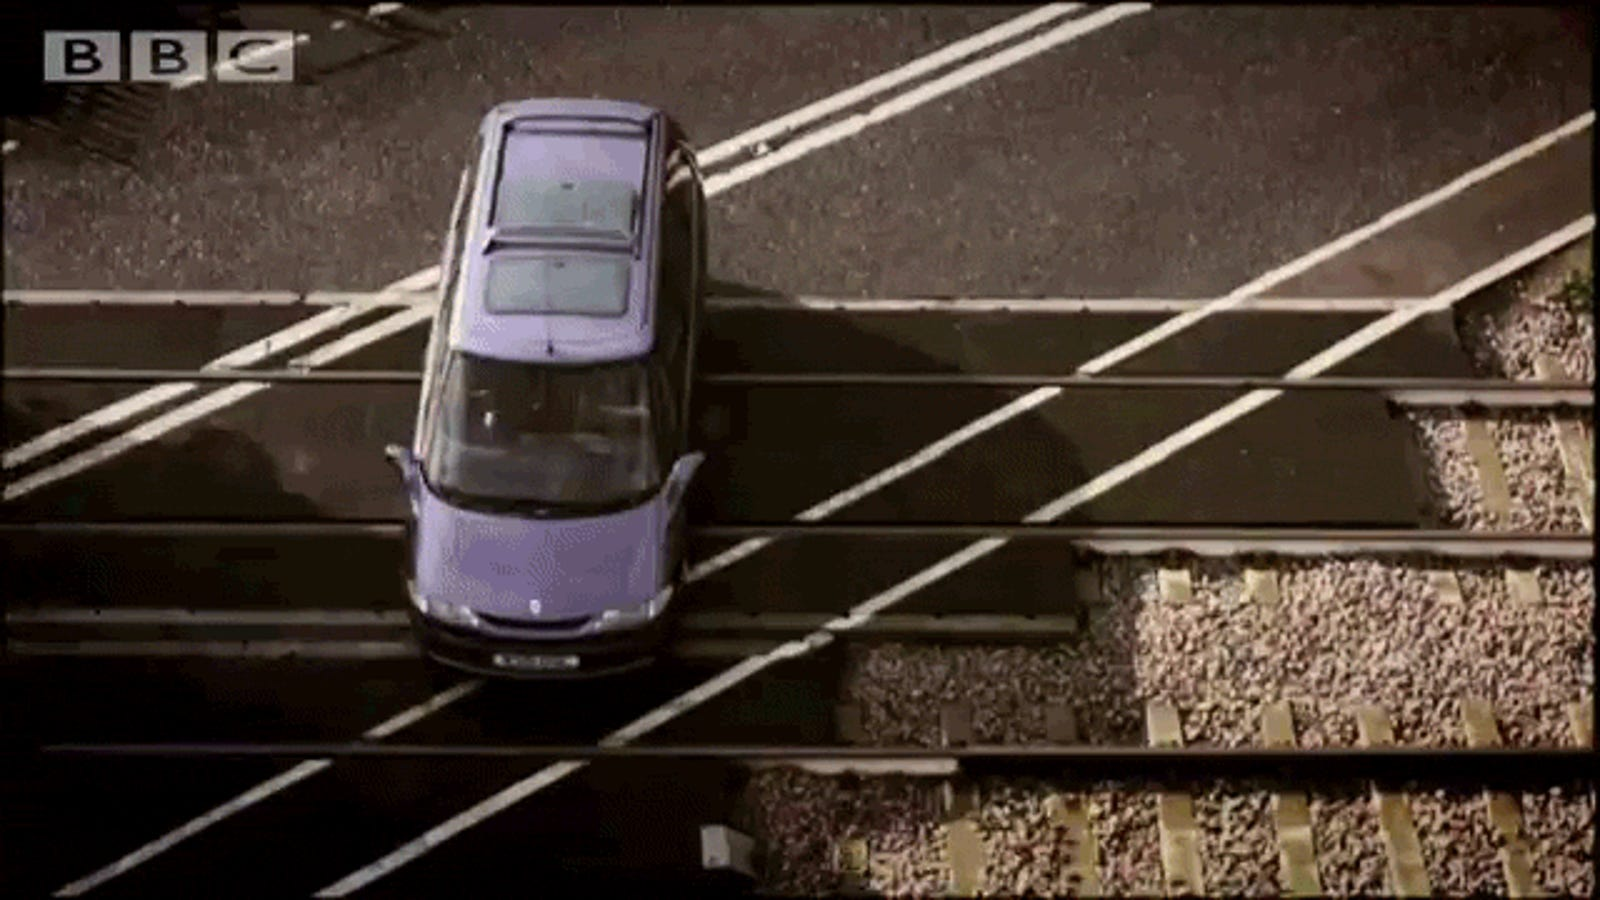 Watch a TV show use a train to completely obliterate a car